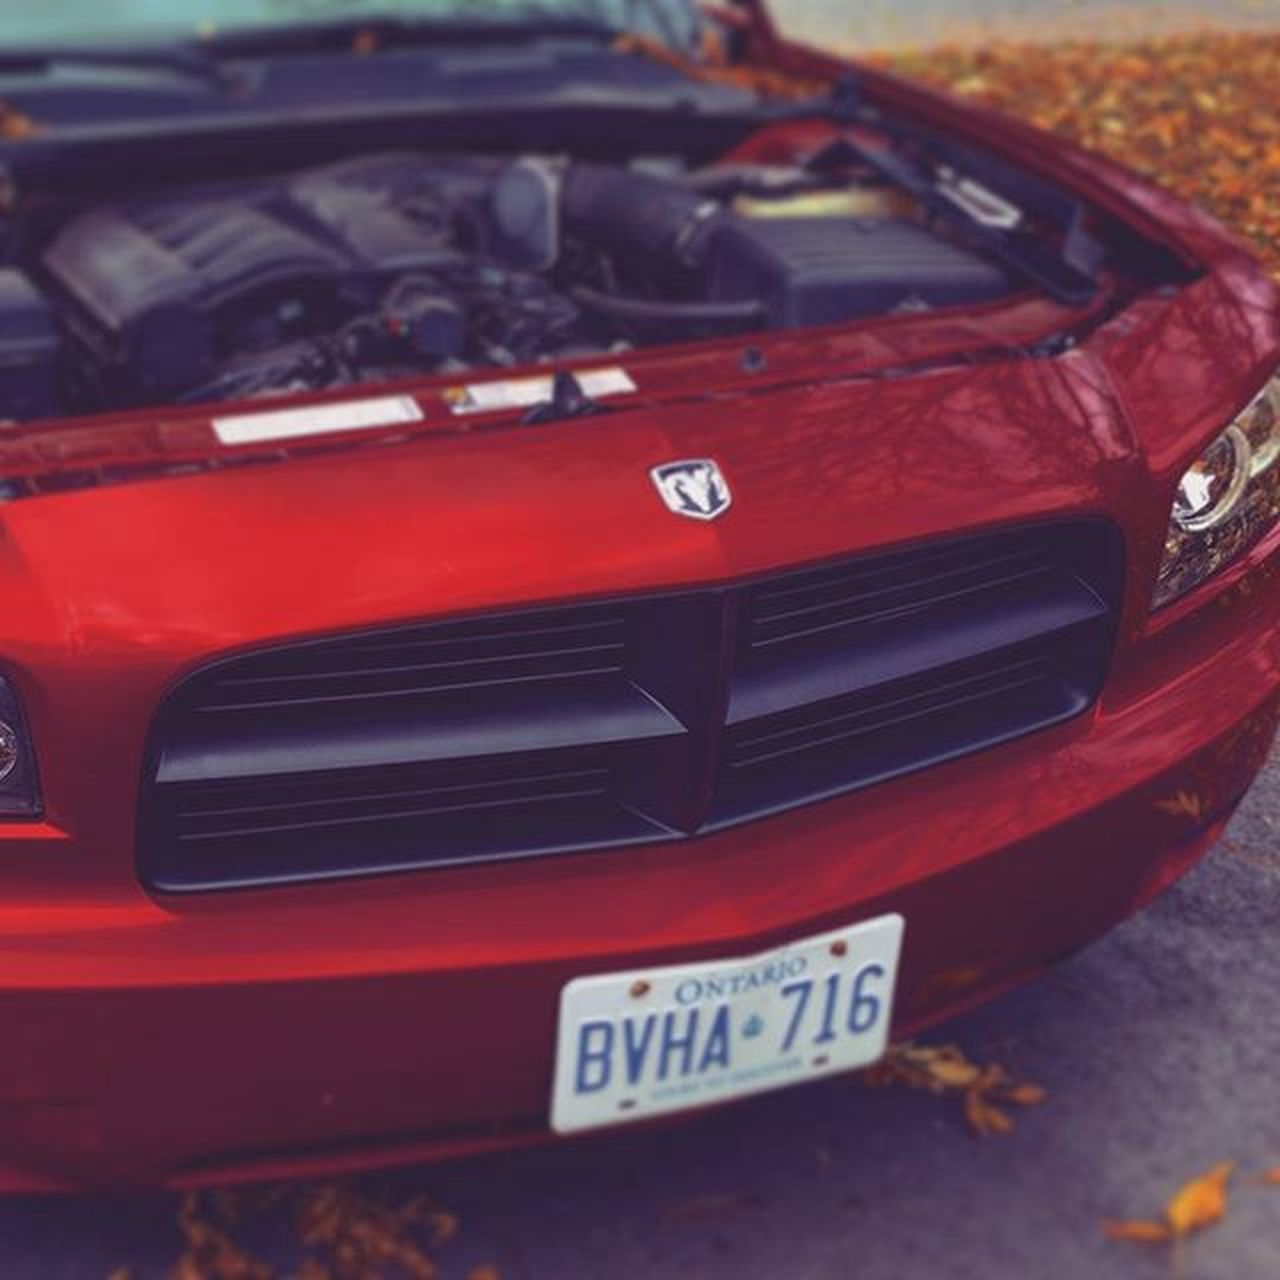 car, red, transportation, land vehicle, no people, day, close-up, outdoors